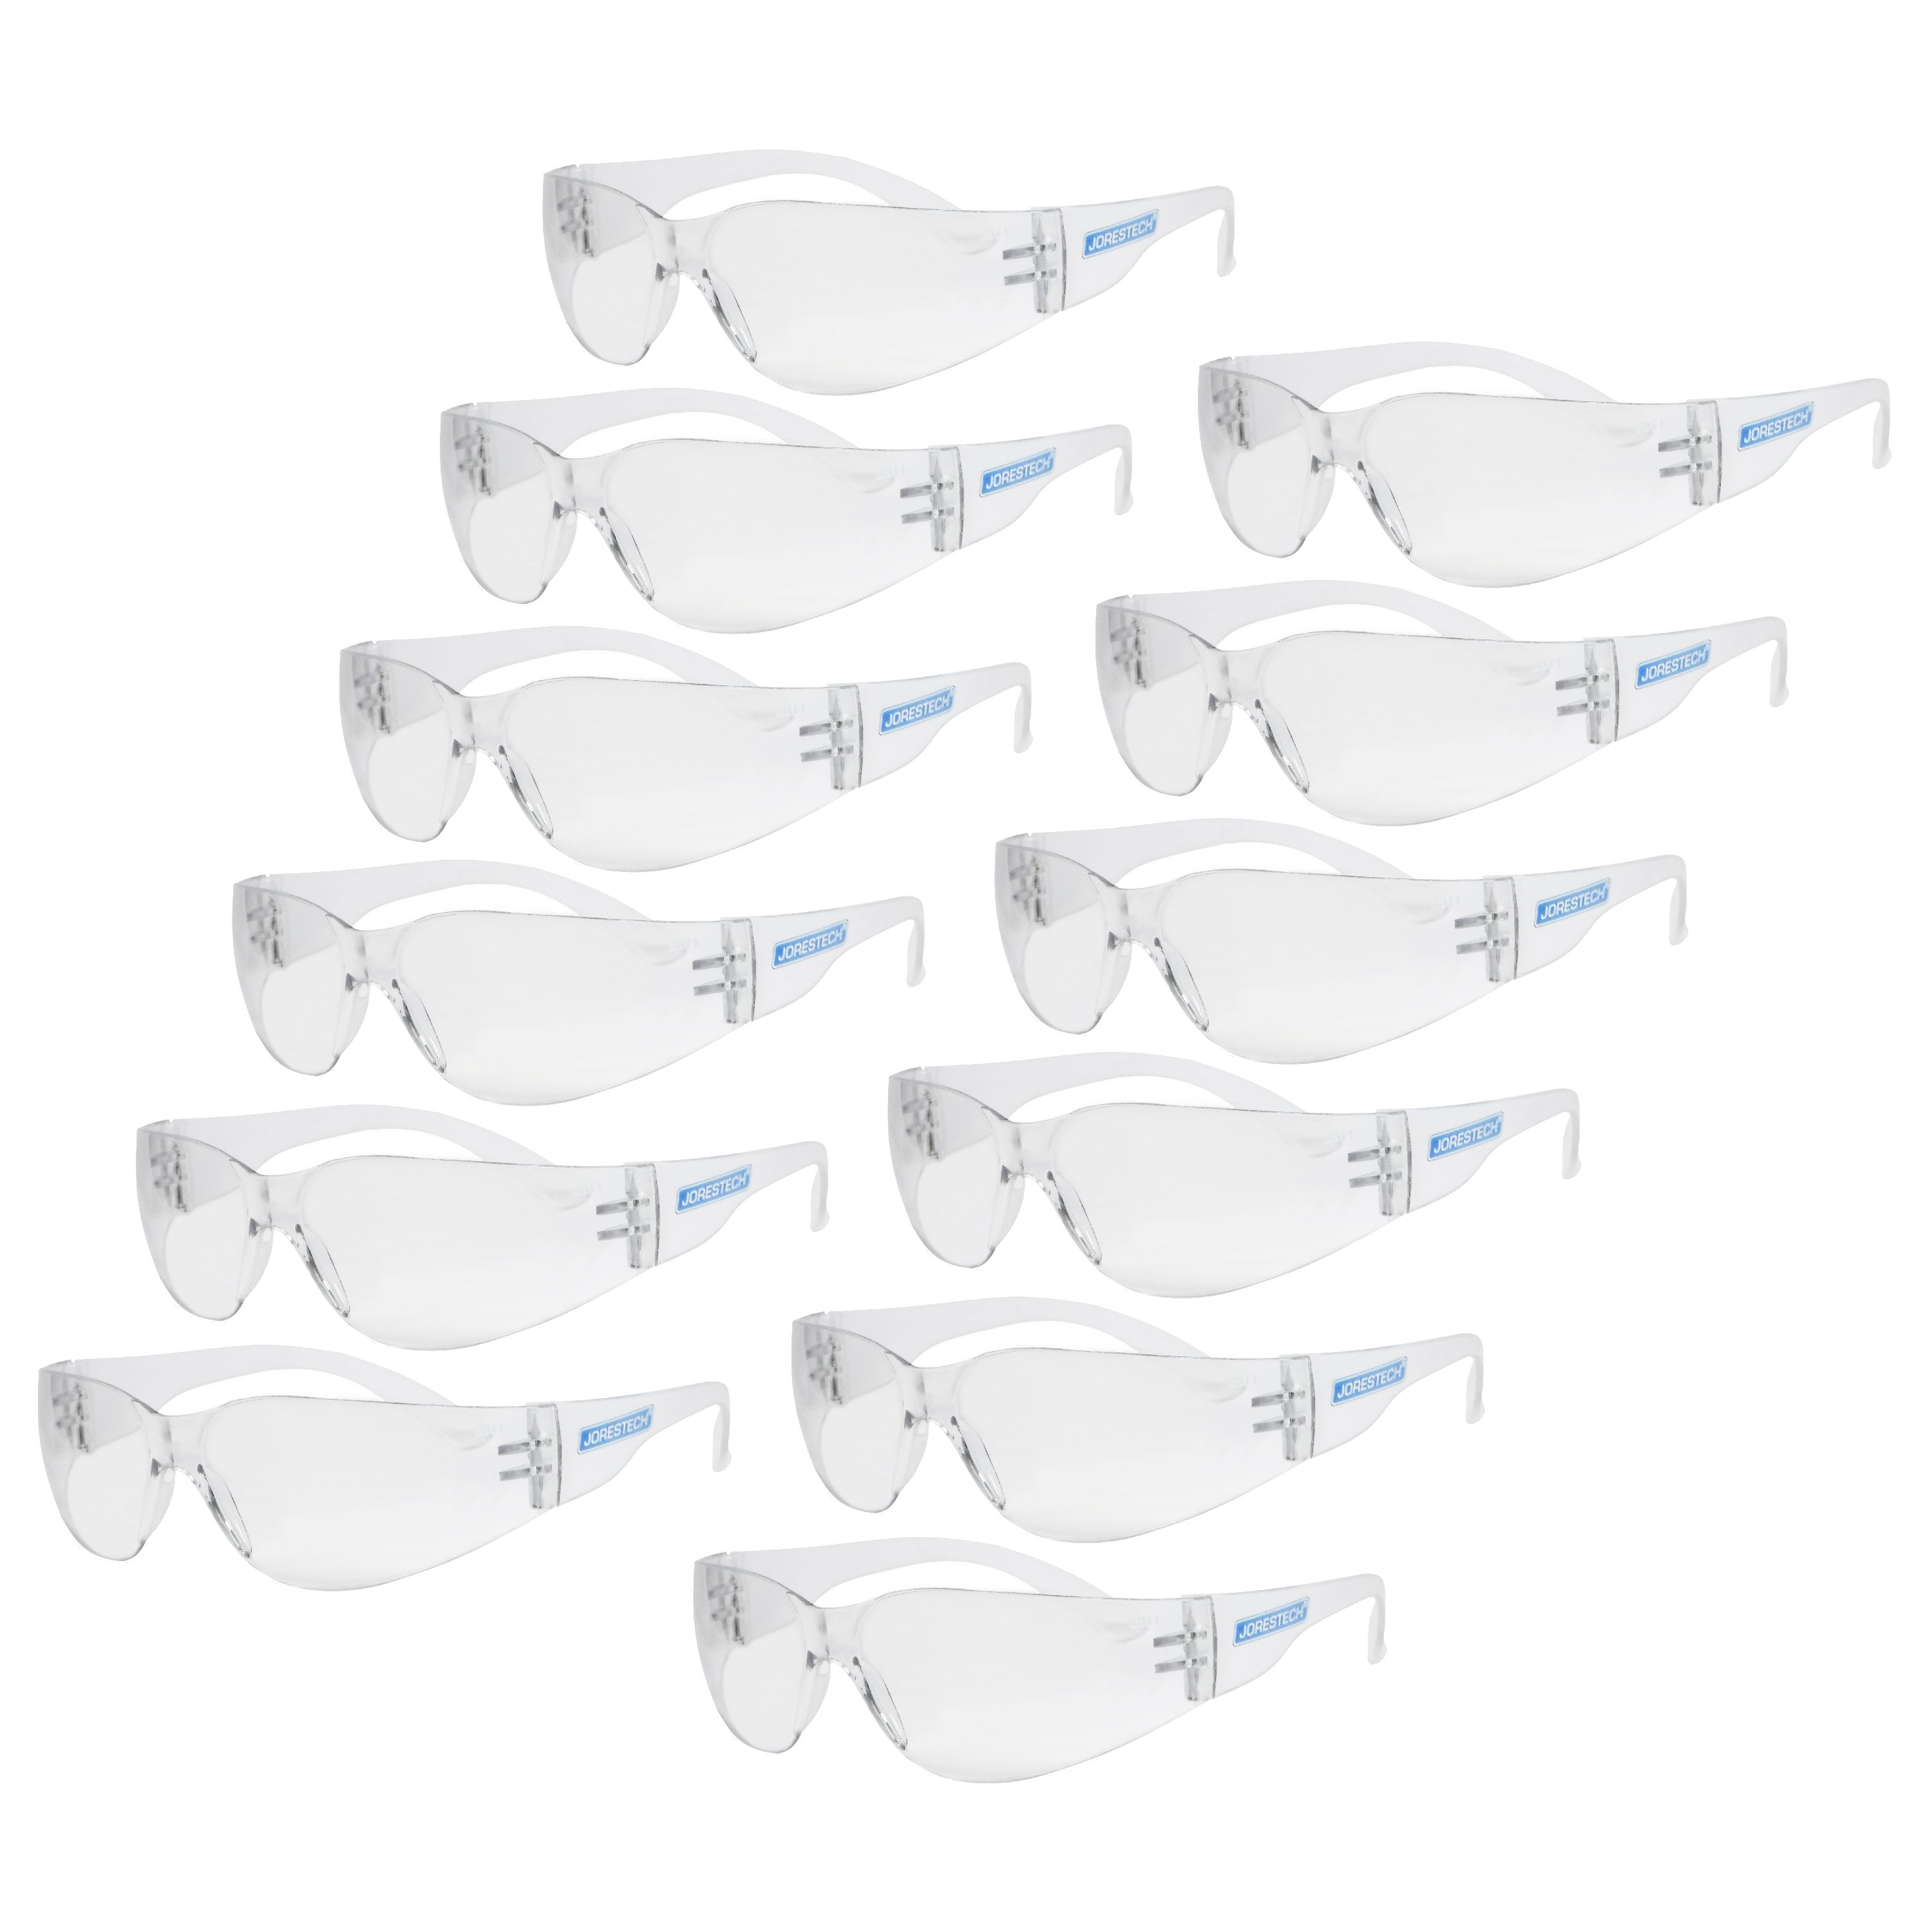 JORESTECH® UV Safety Glasses, Anti Scratch and Frame-less Clear glasses. Polycarbonate Impact Resistant Lens. Pack of 12 Units